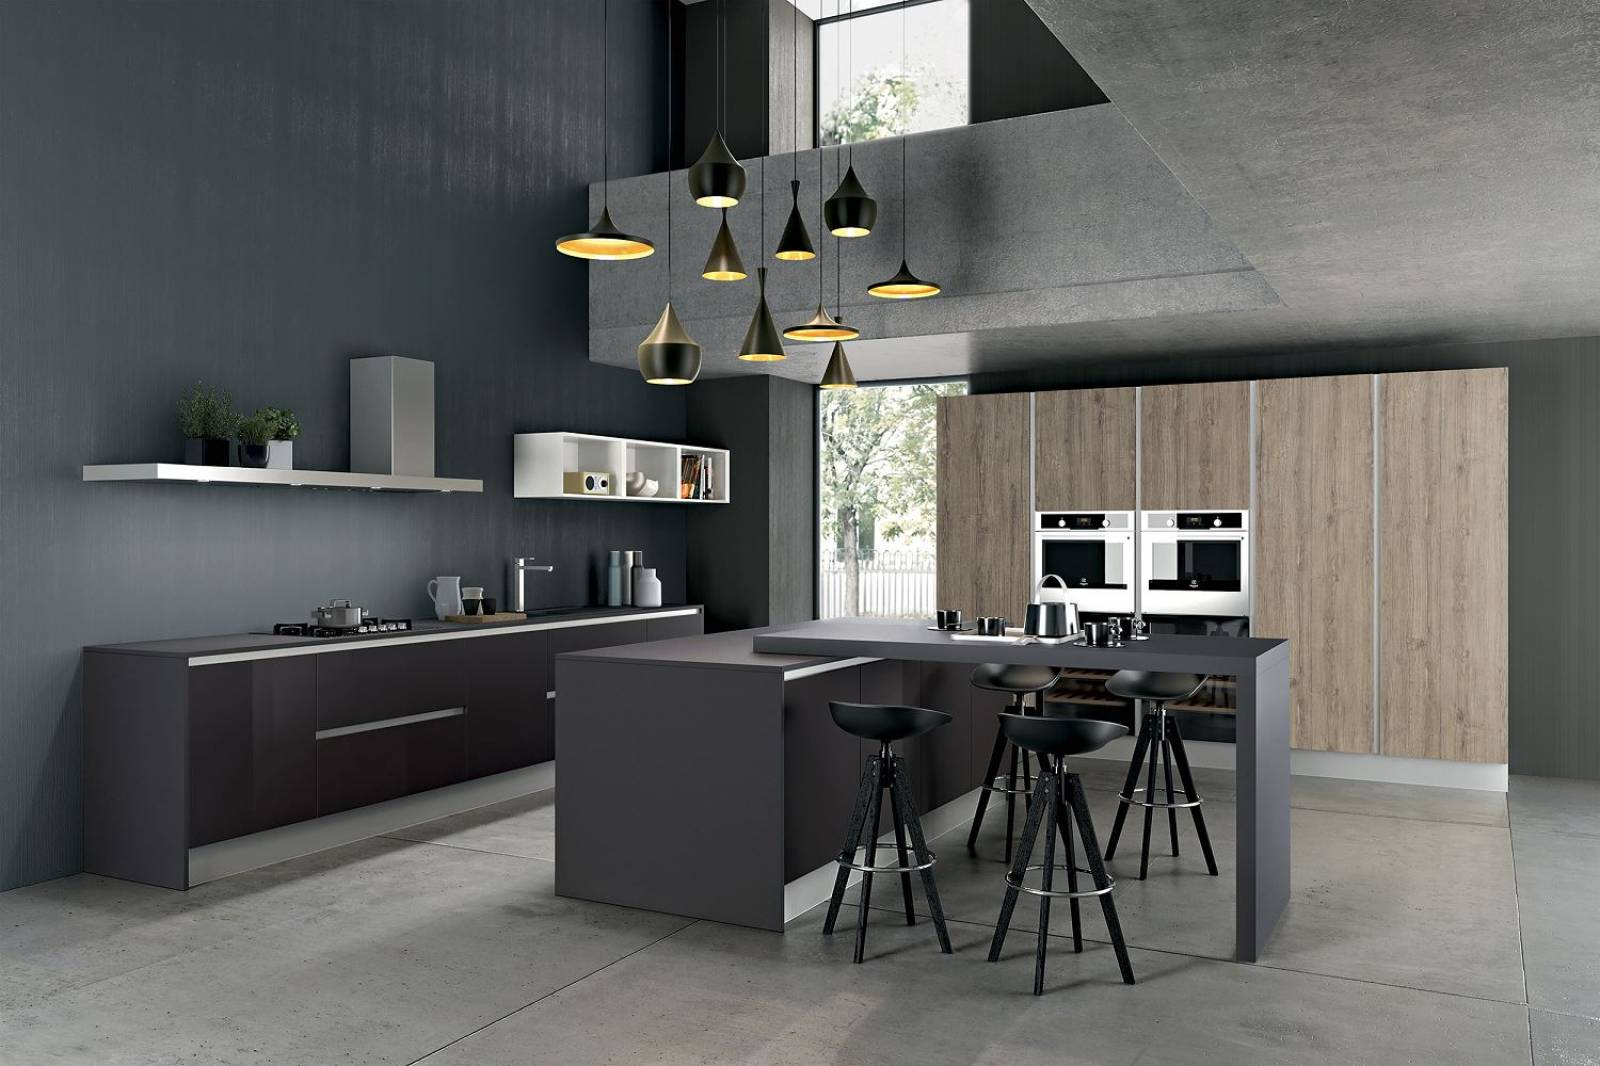 cuisine sur mesure avec plan de travail stratifi pierre design cuisines. Black Bedroom Furniture Sets. Home Design Ideas